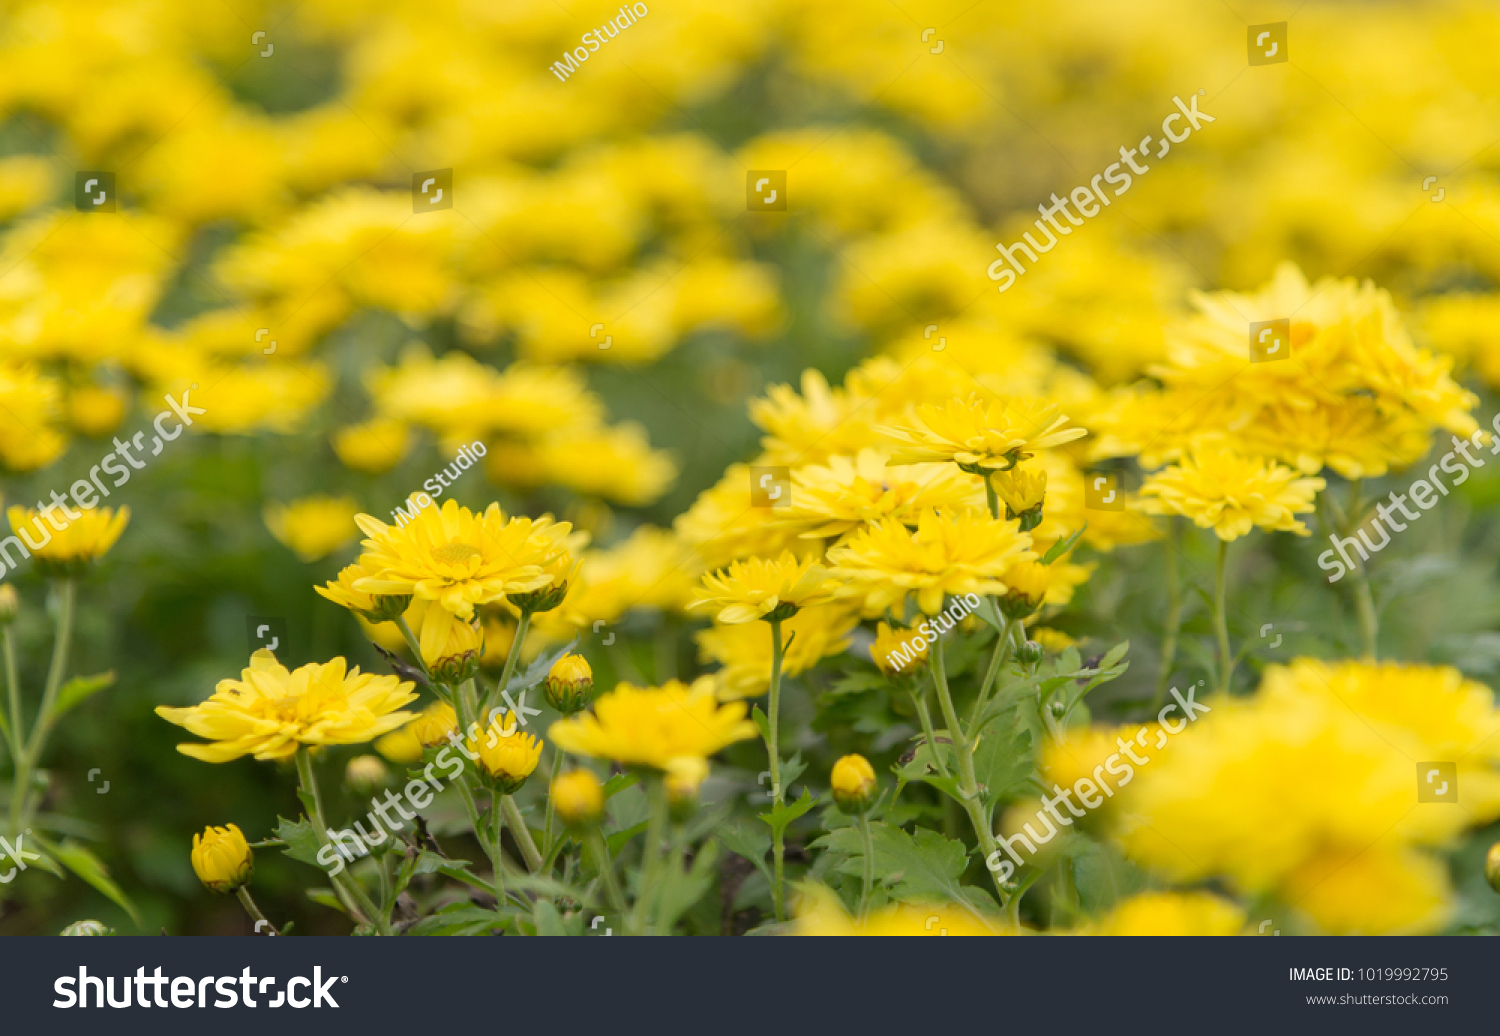 Yellow Flower In Sping Nature Backgroundpanoramin Banner With Copy